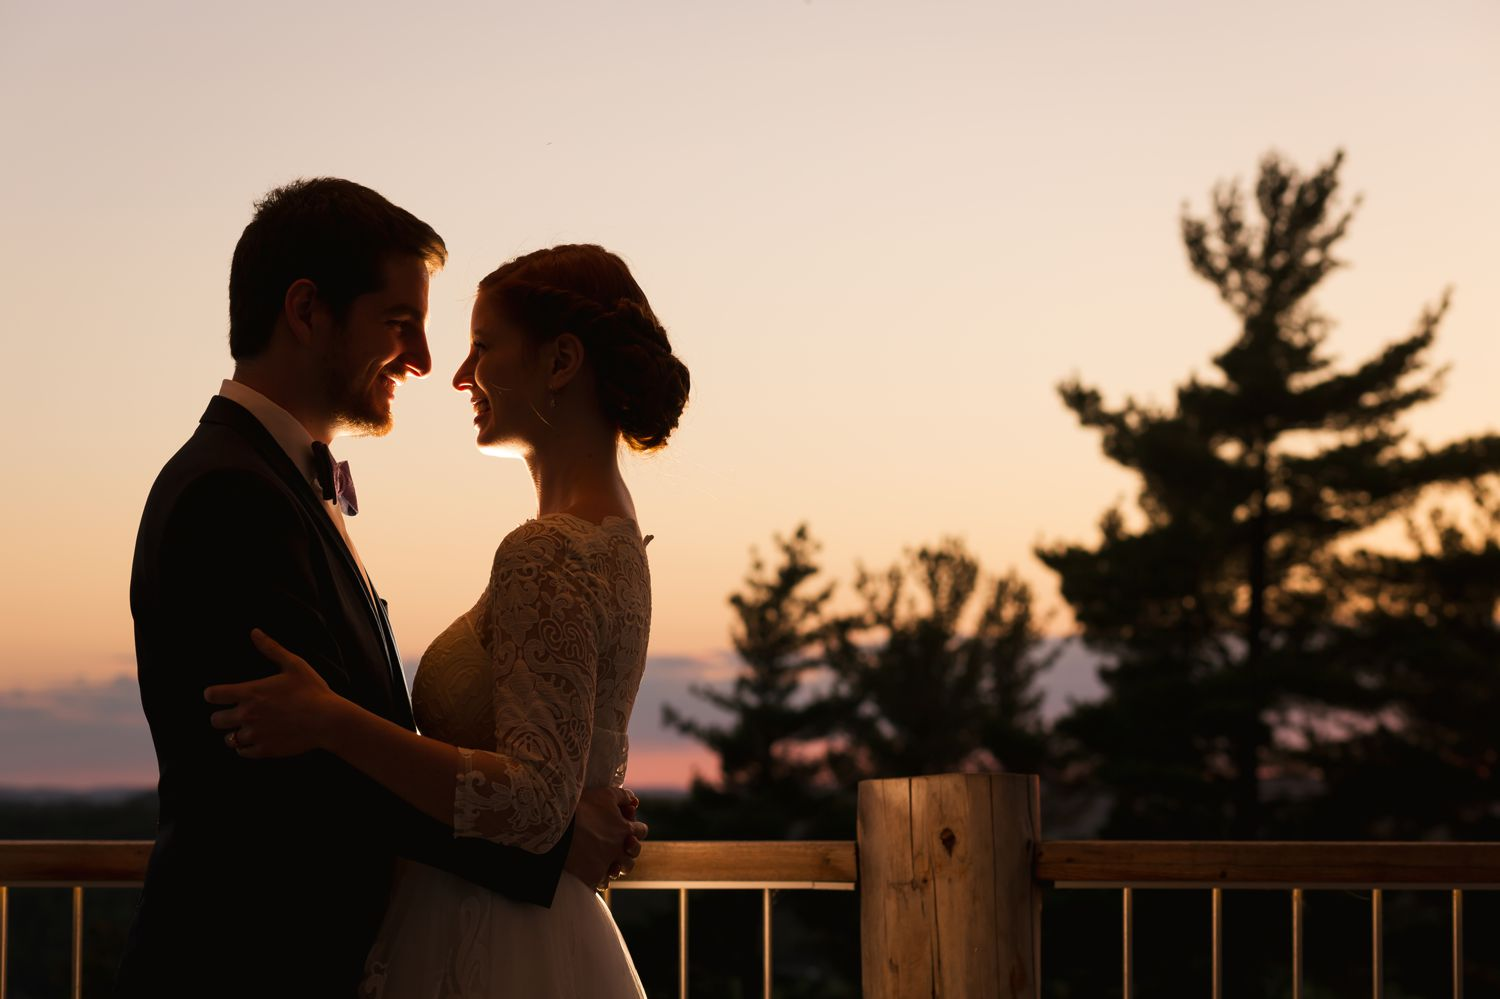 A night time portrait of the bride and groom after their wedding at Le Belvedere